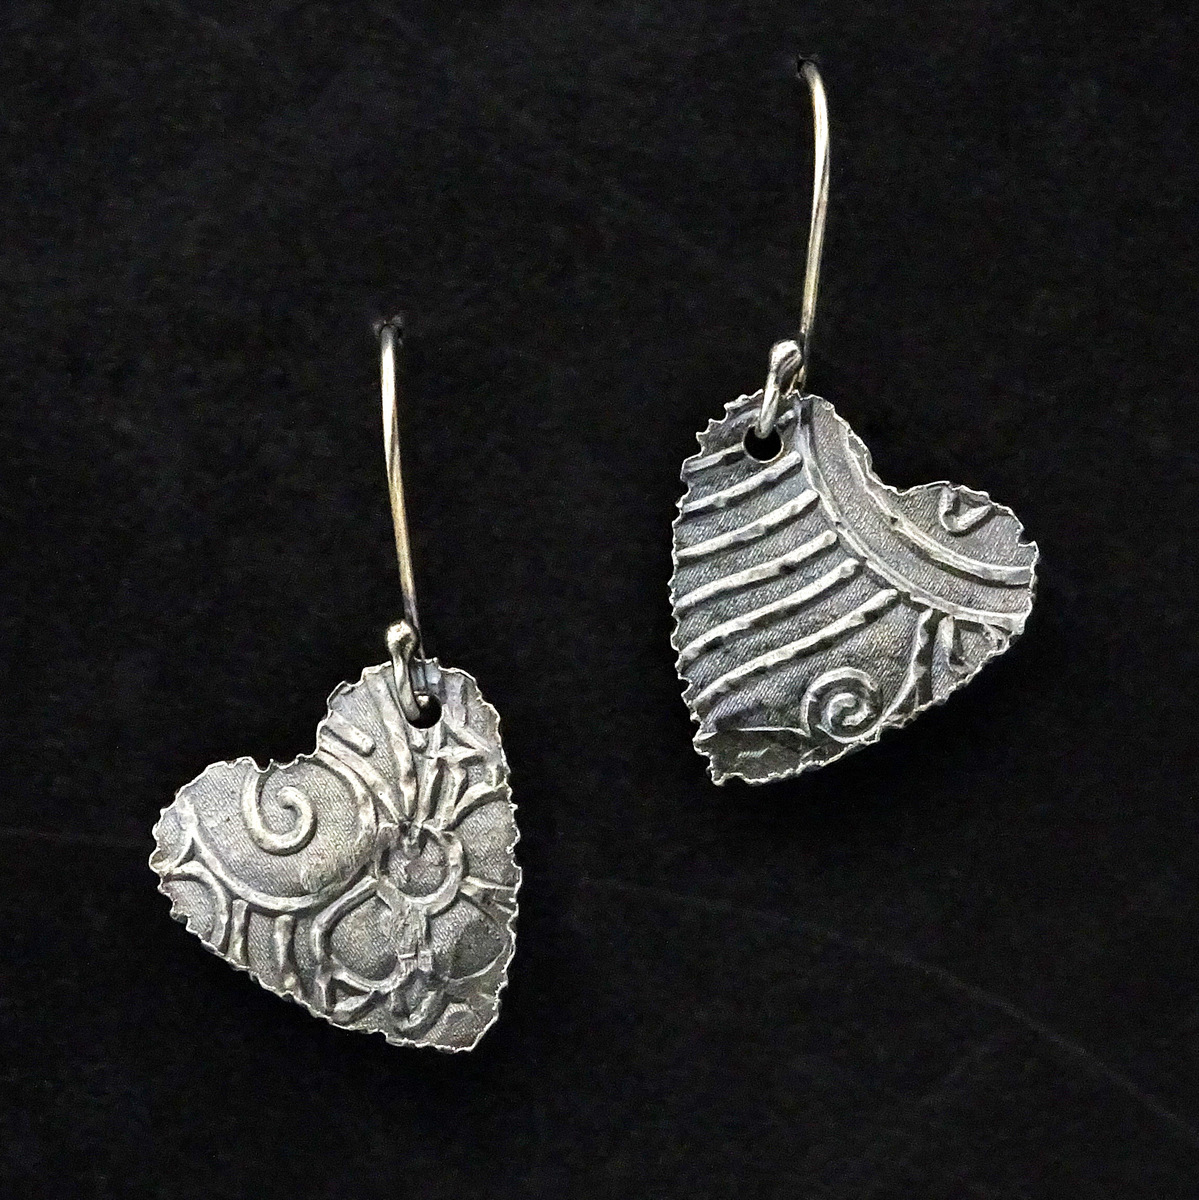 1-Sylvia McCollum, Handcrafted Earrings, Silver-011.JPG